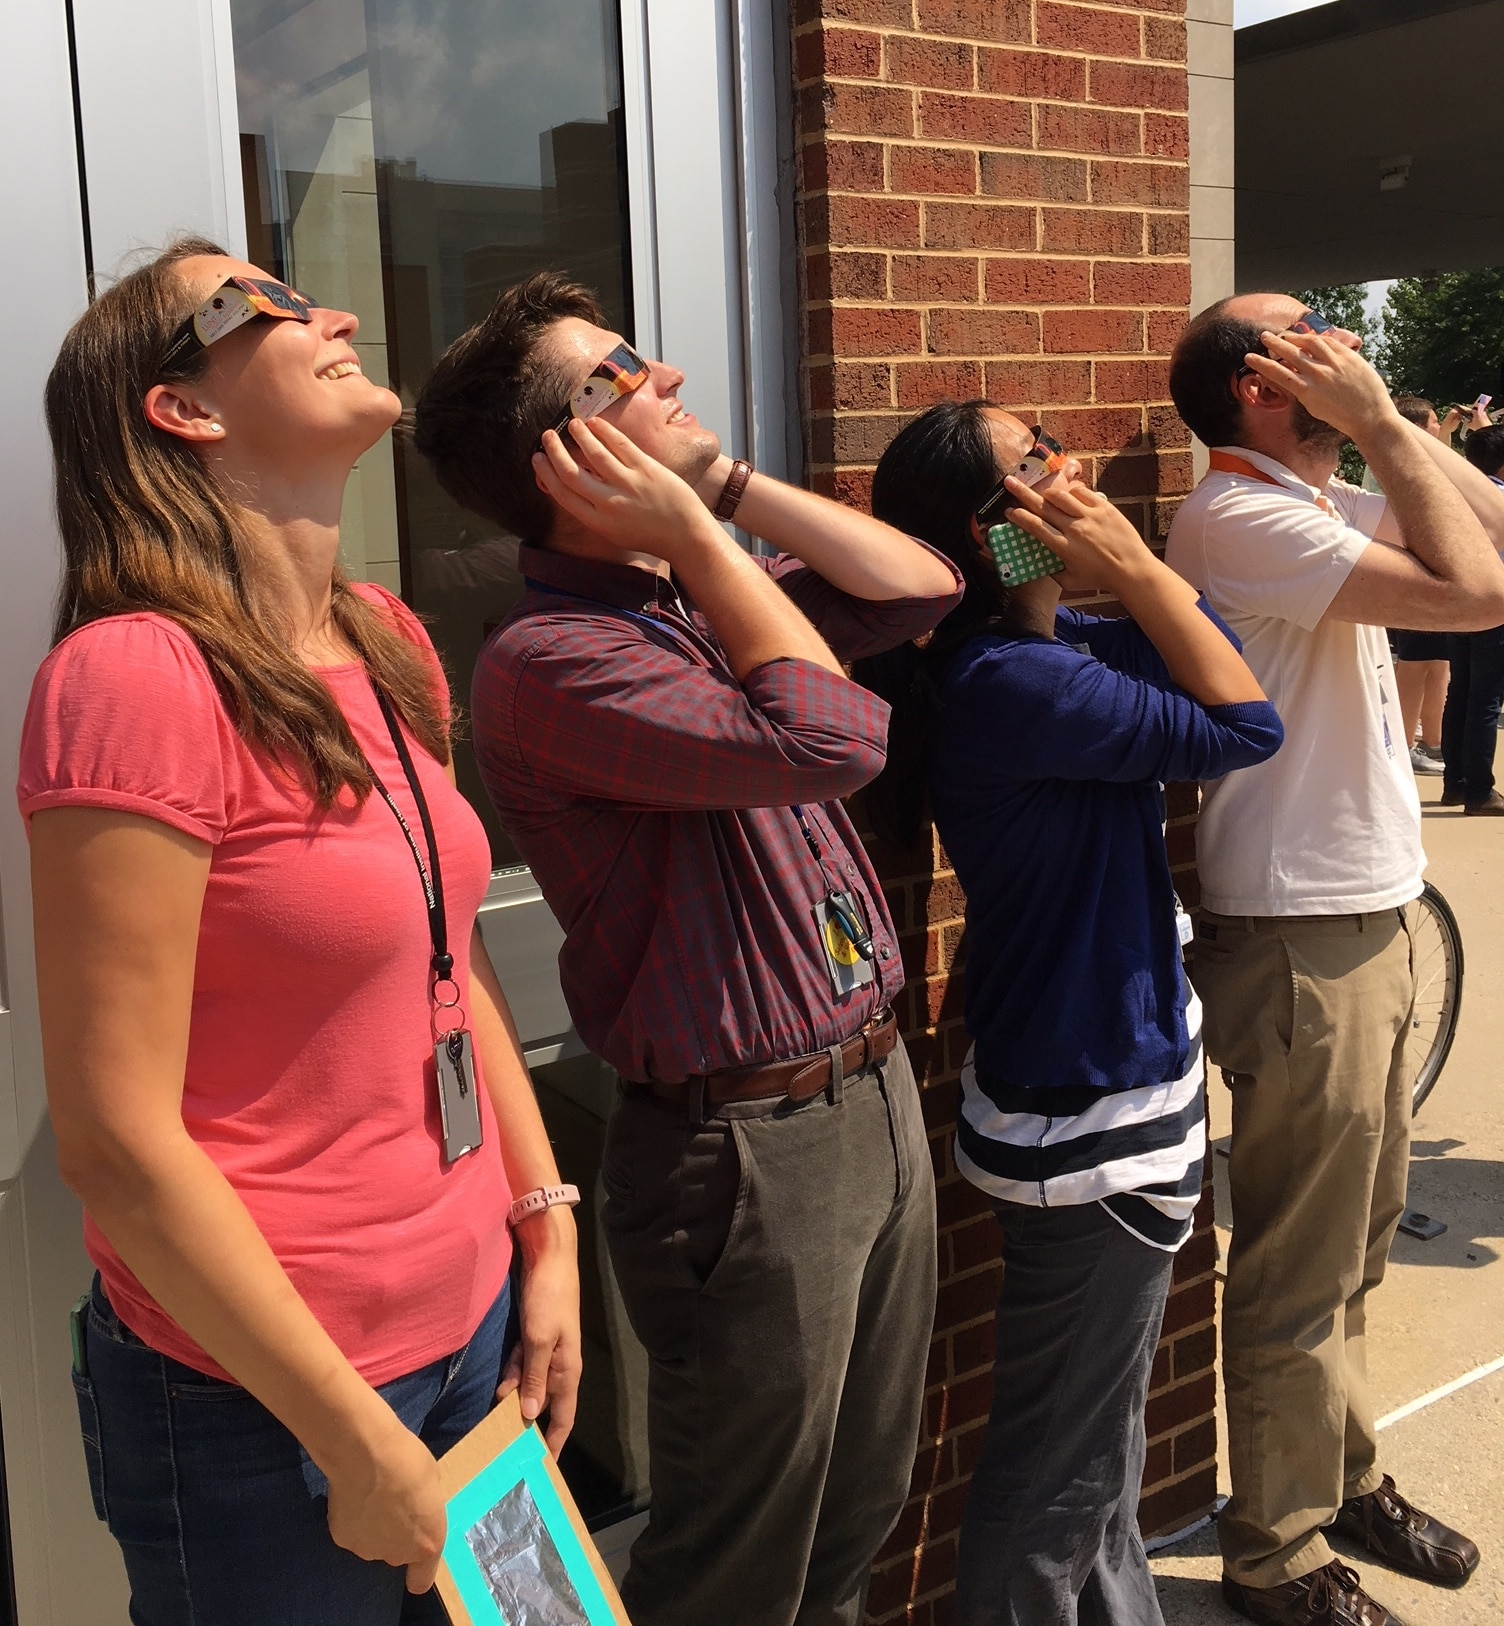 A photograph of people looking at a solar eclipse